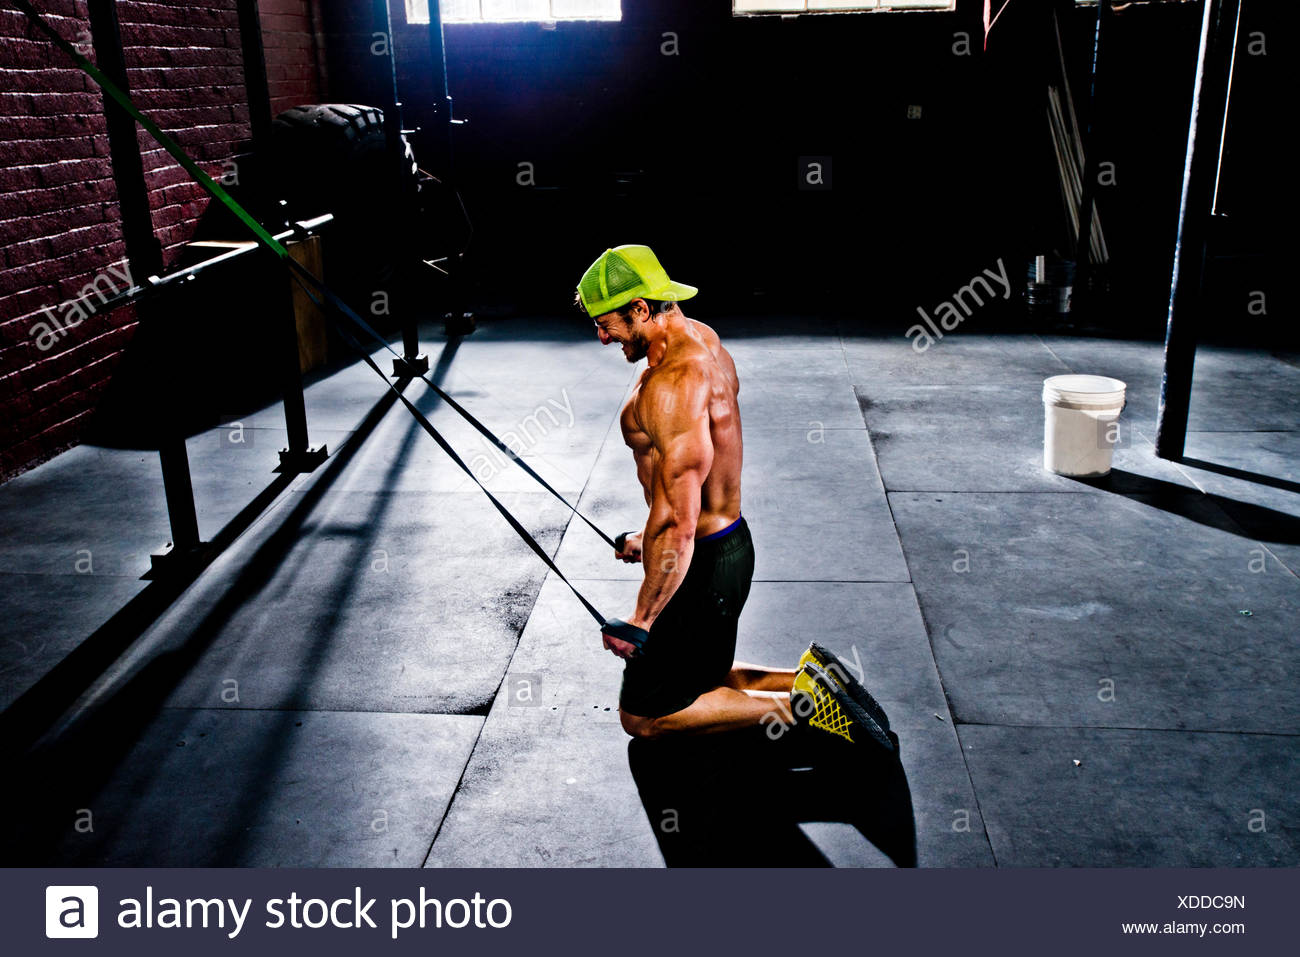 A crossfit athlete working out with resistance bands. - Stock Image